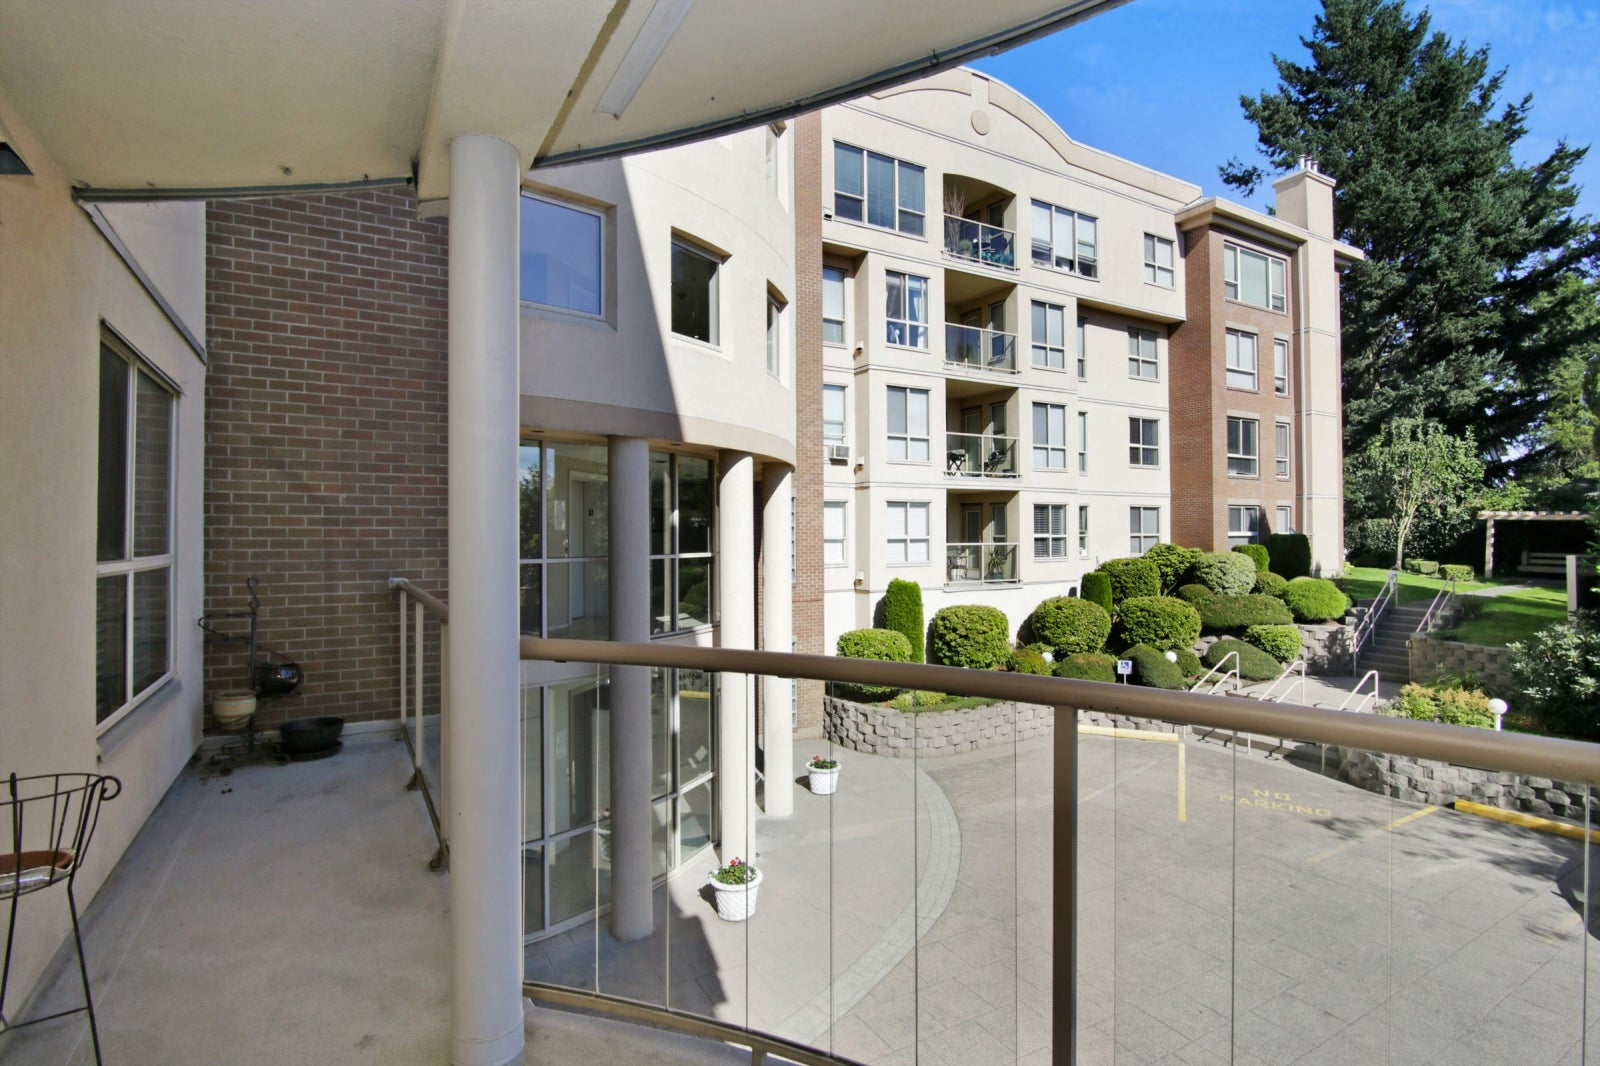 101 33731 MARSHALL ROAD - Central Abbotsford Apartment/Condo for sale, 2 Bedrooms (R2211464) #12